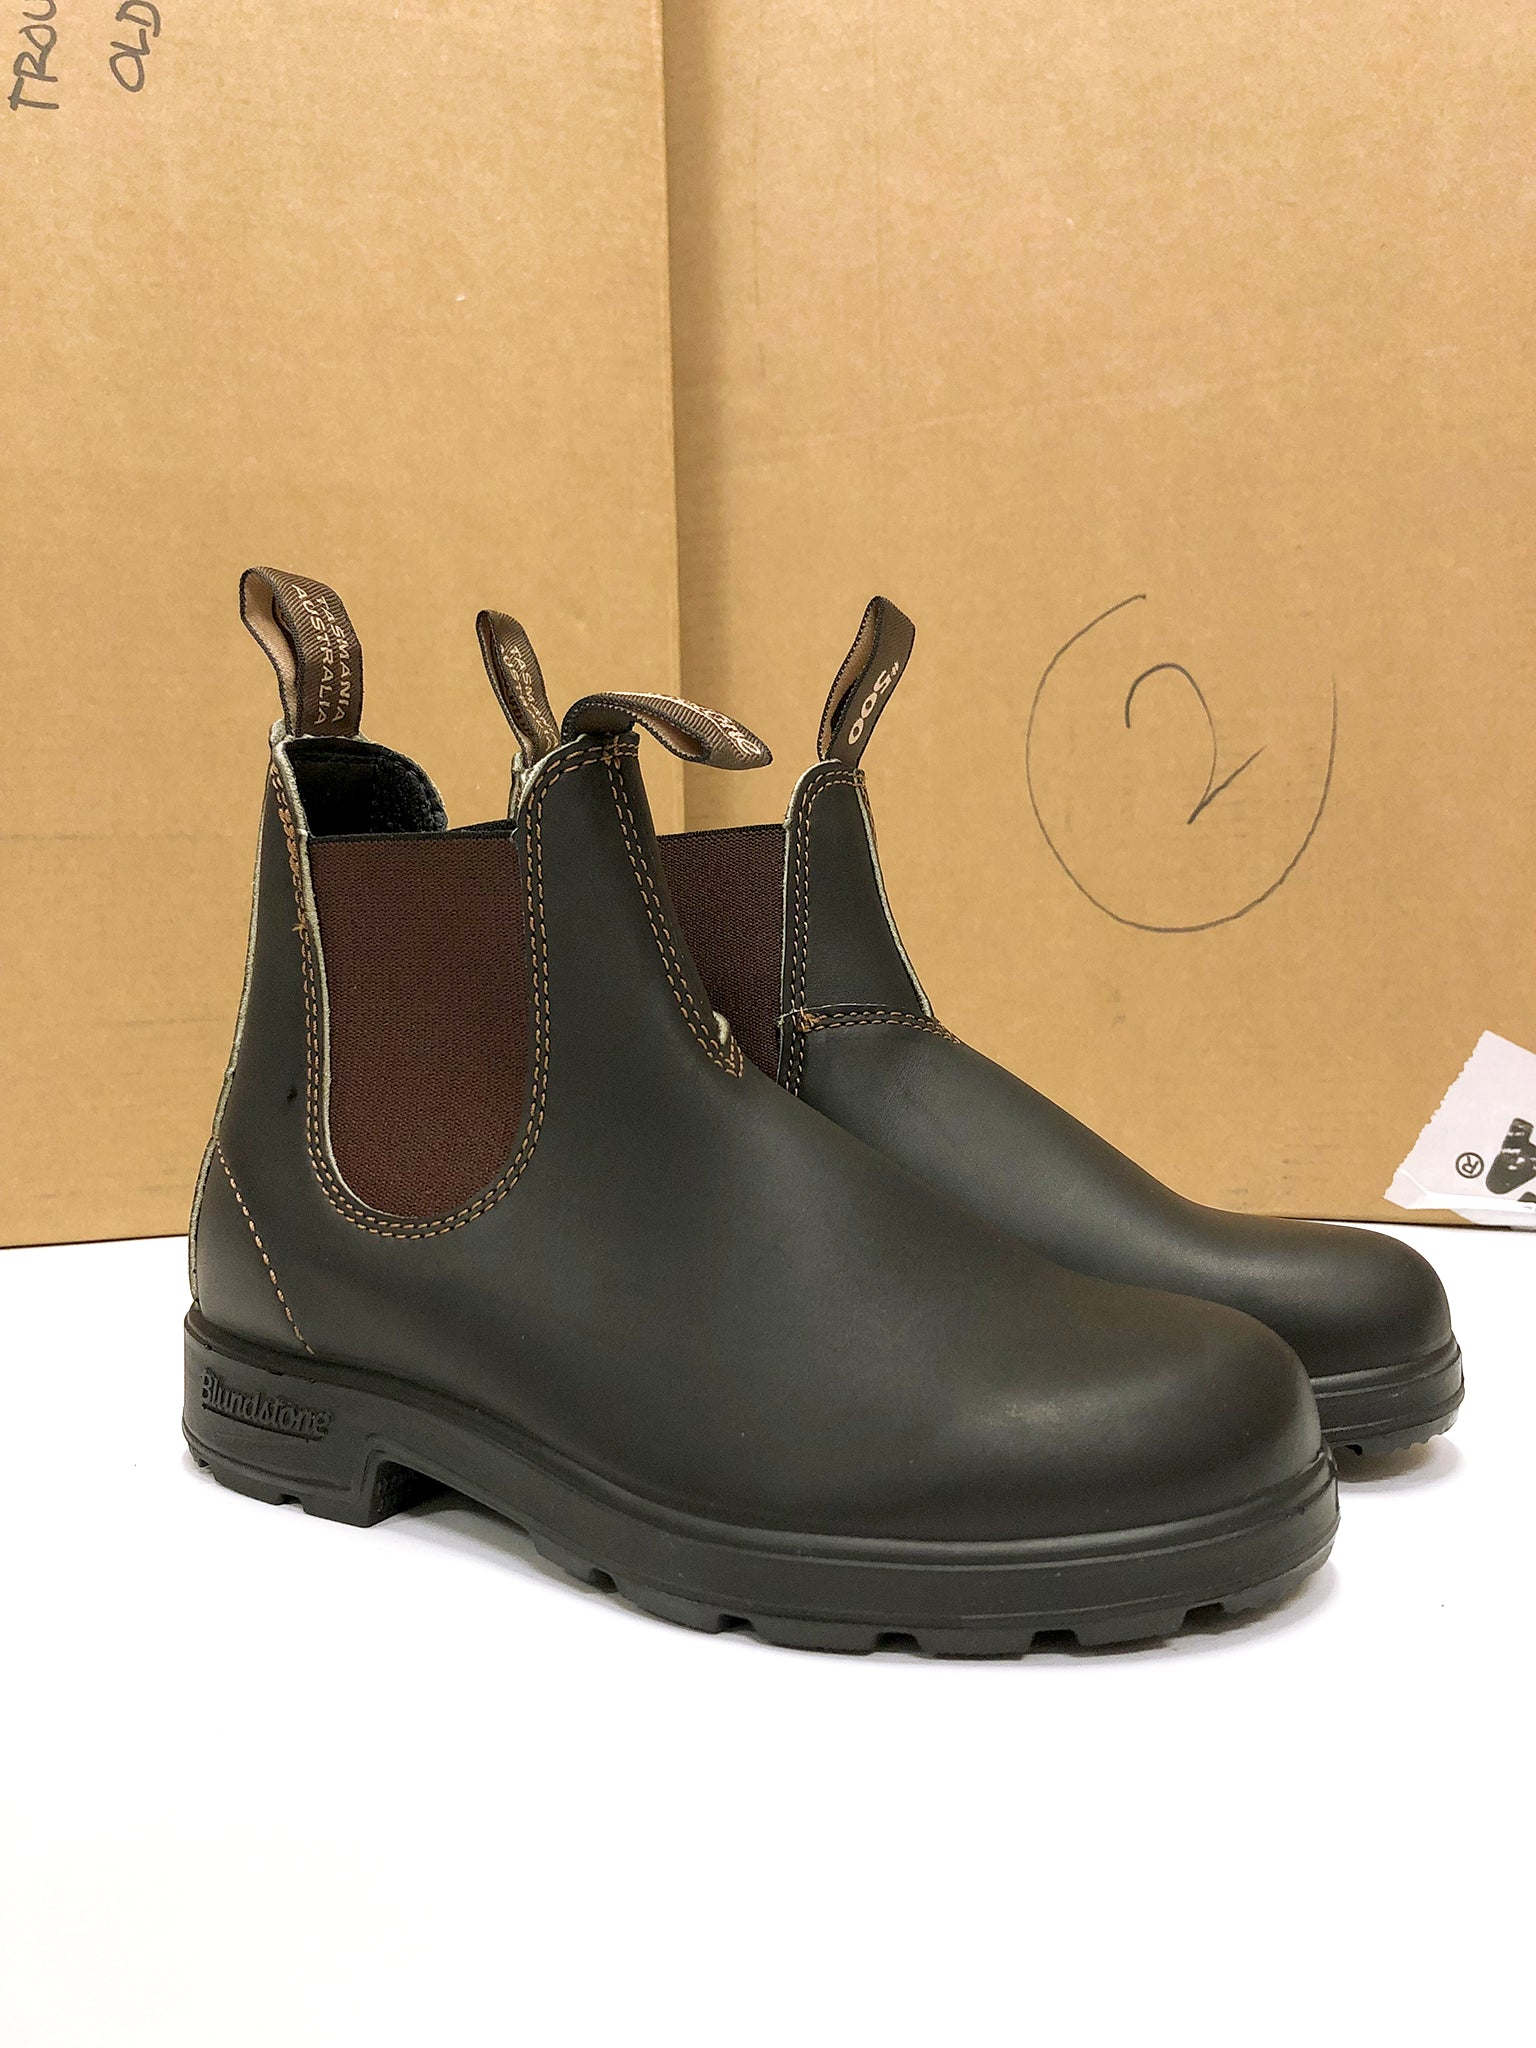 blundstone chelsea boot brown